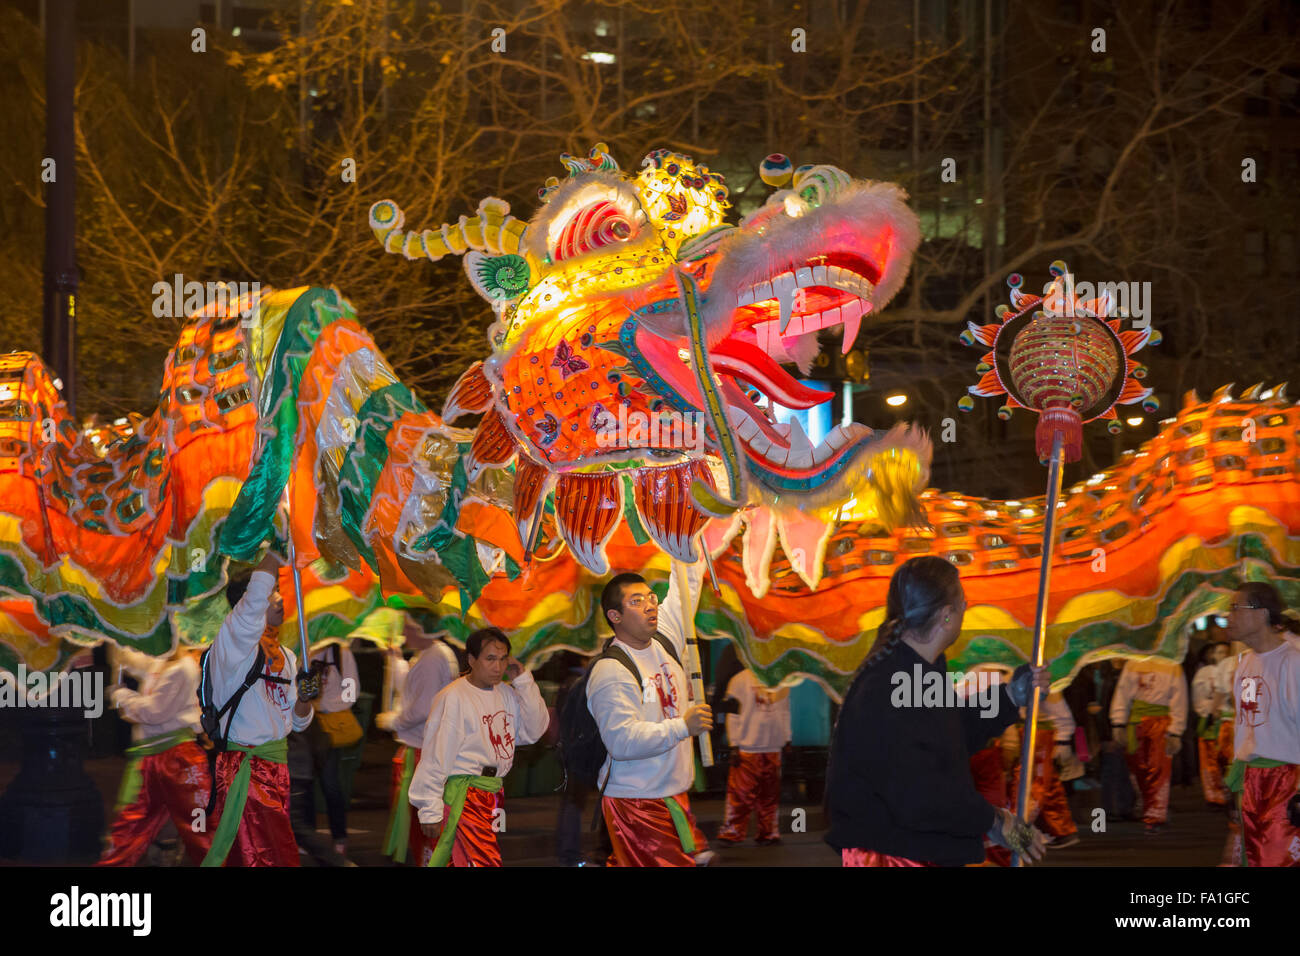 Dragon dance on Market Street at San Francisco's annual Chinese New Year parade - Stock Image